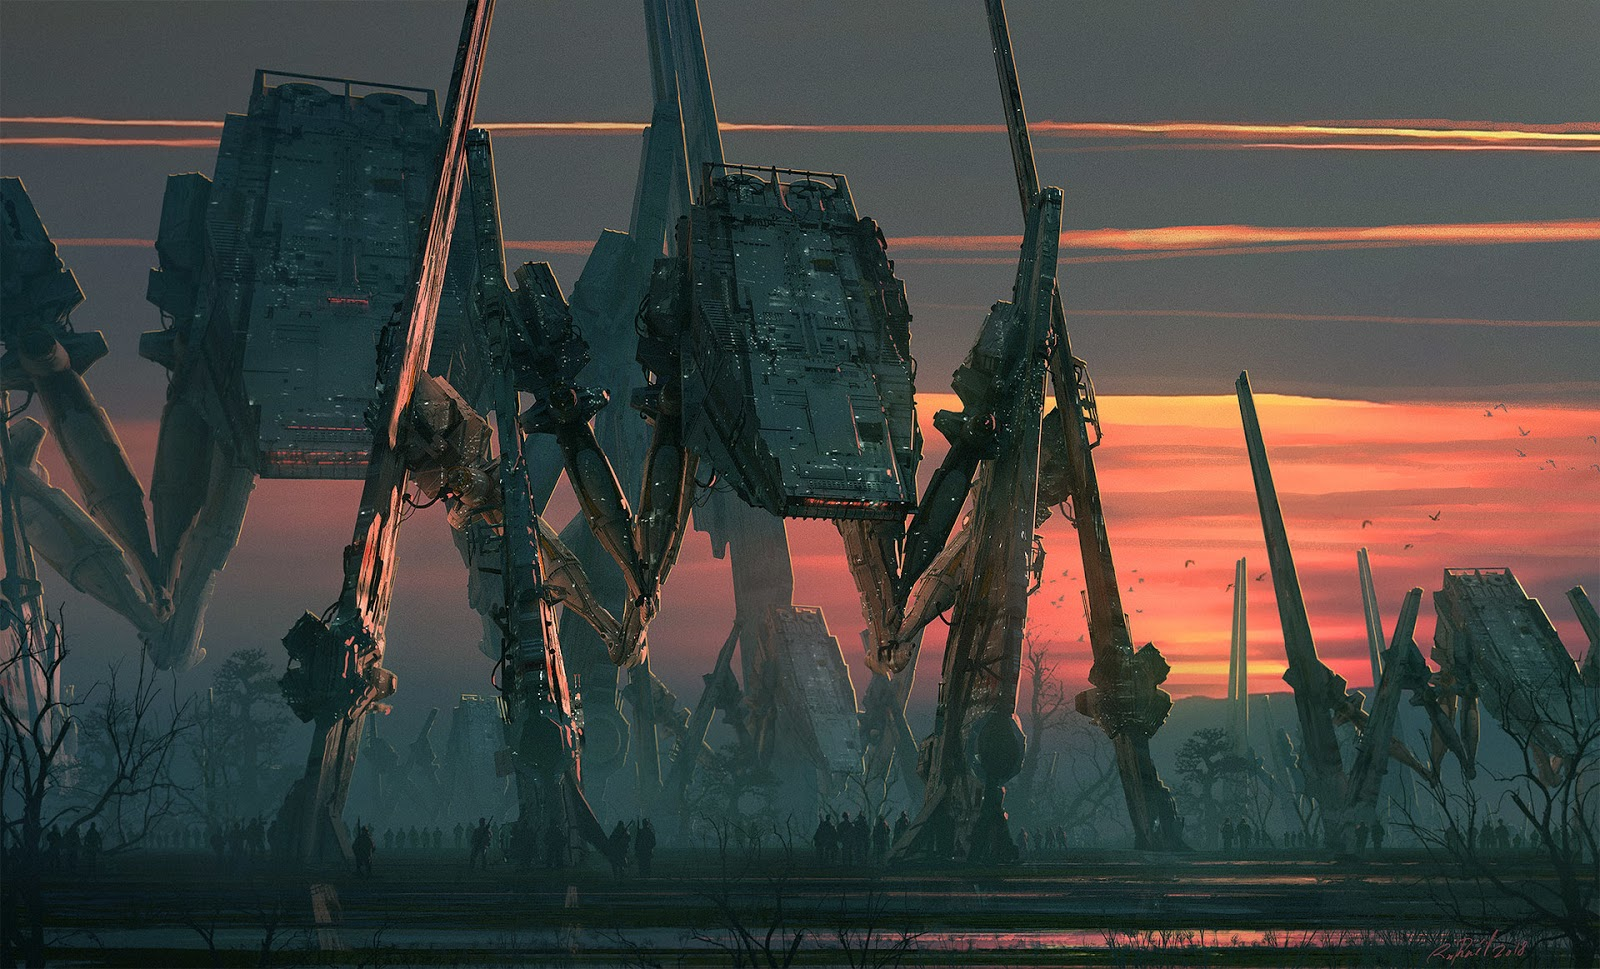 Images: A Collection Of Sci-Fi Concept Art From Raphael Lacoste